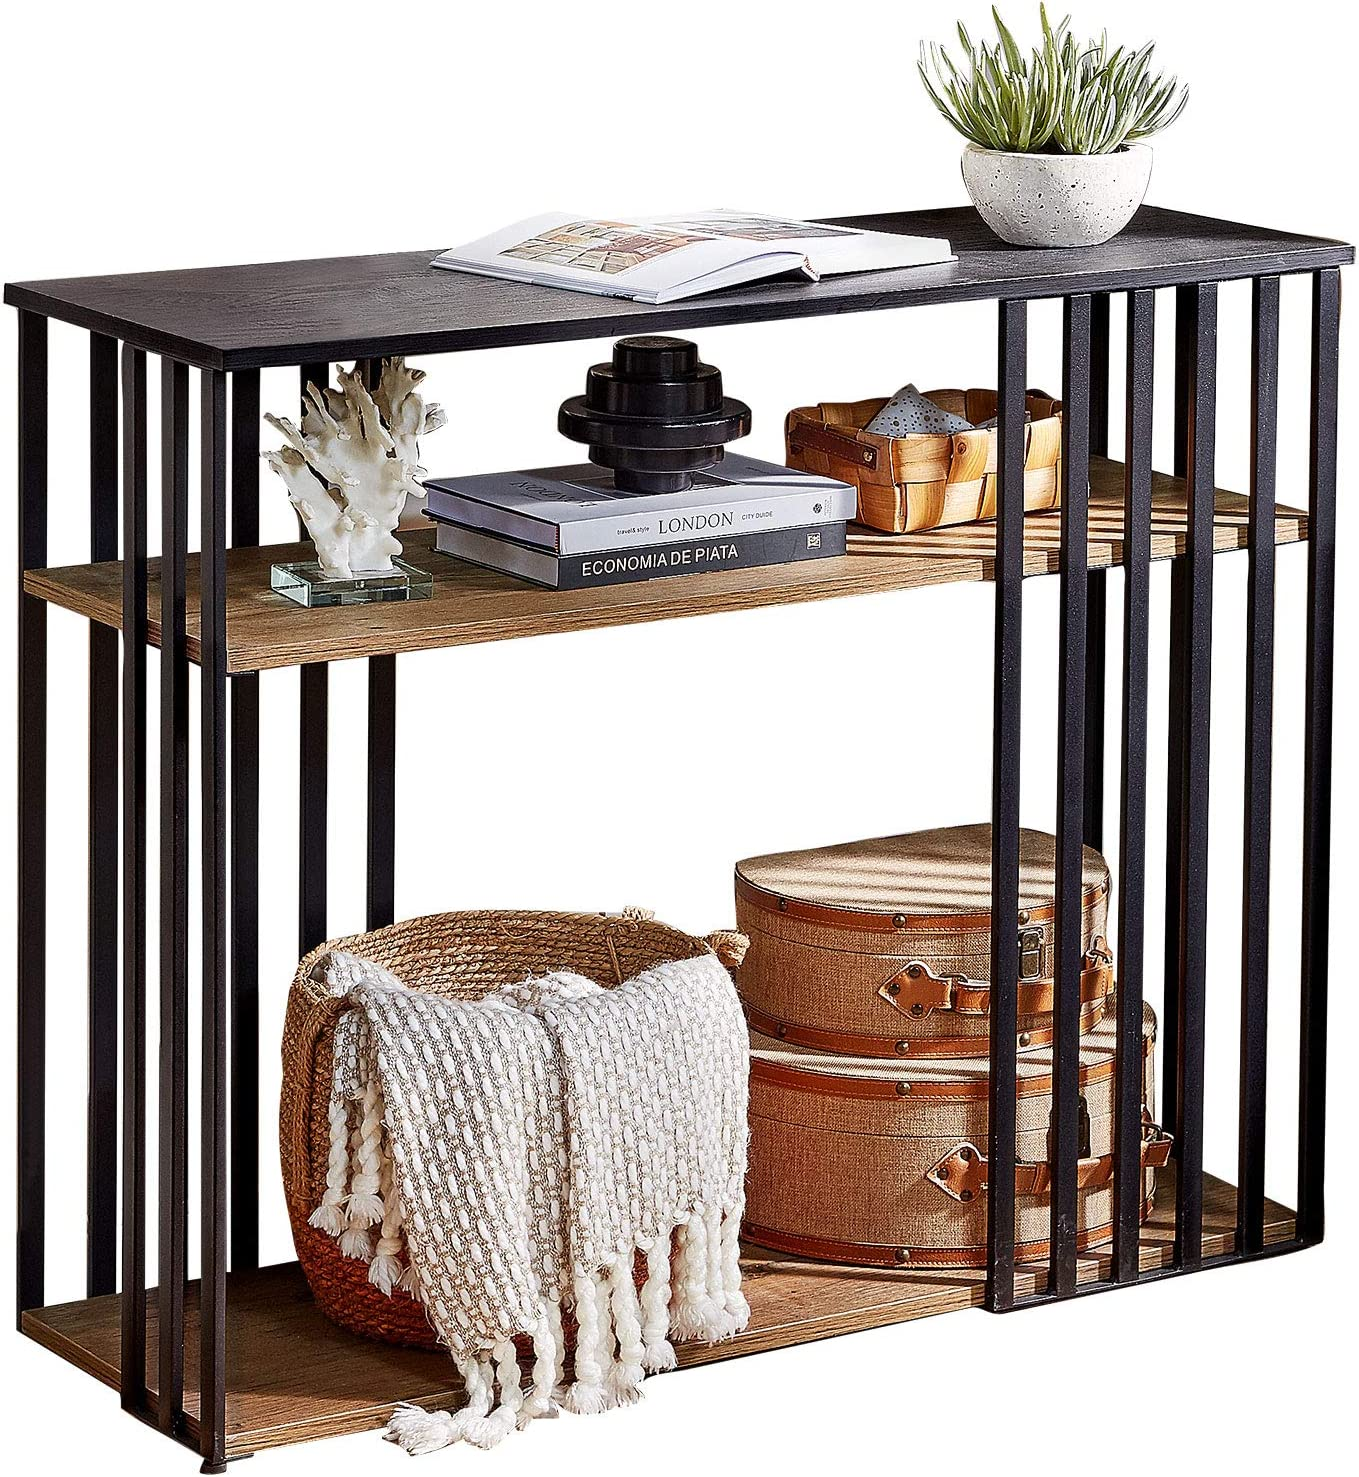 Linsy Home 3-Tier Vintage Long Console Table, Open Shelf for Living Room Entryway, Black Wood with Metal Frame, LS209N2-A